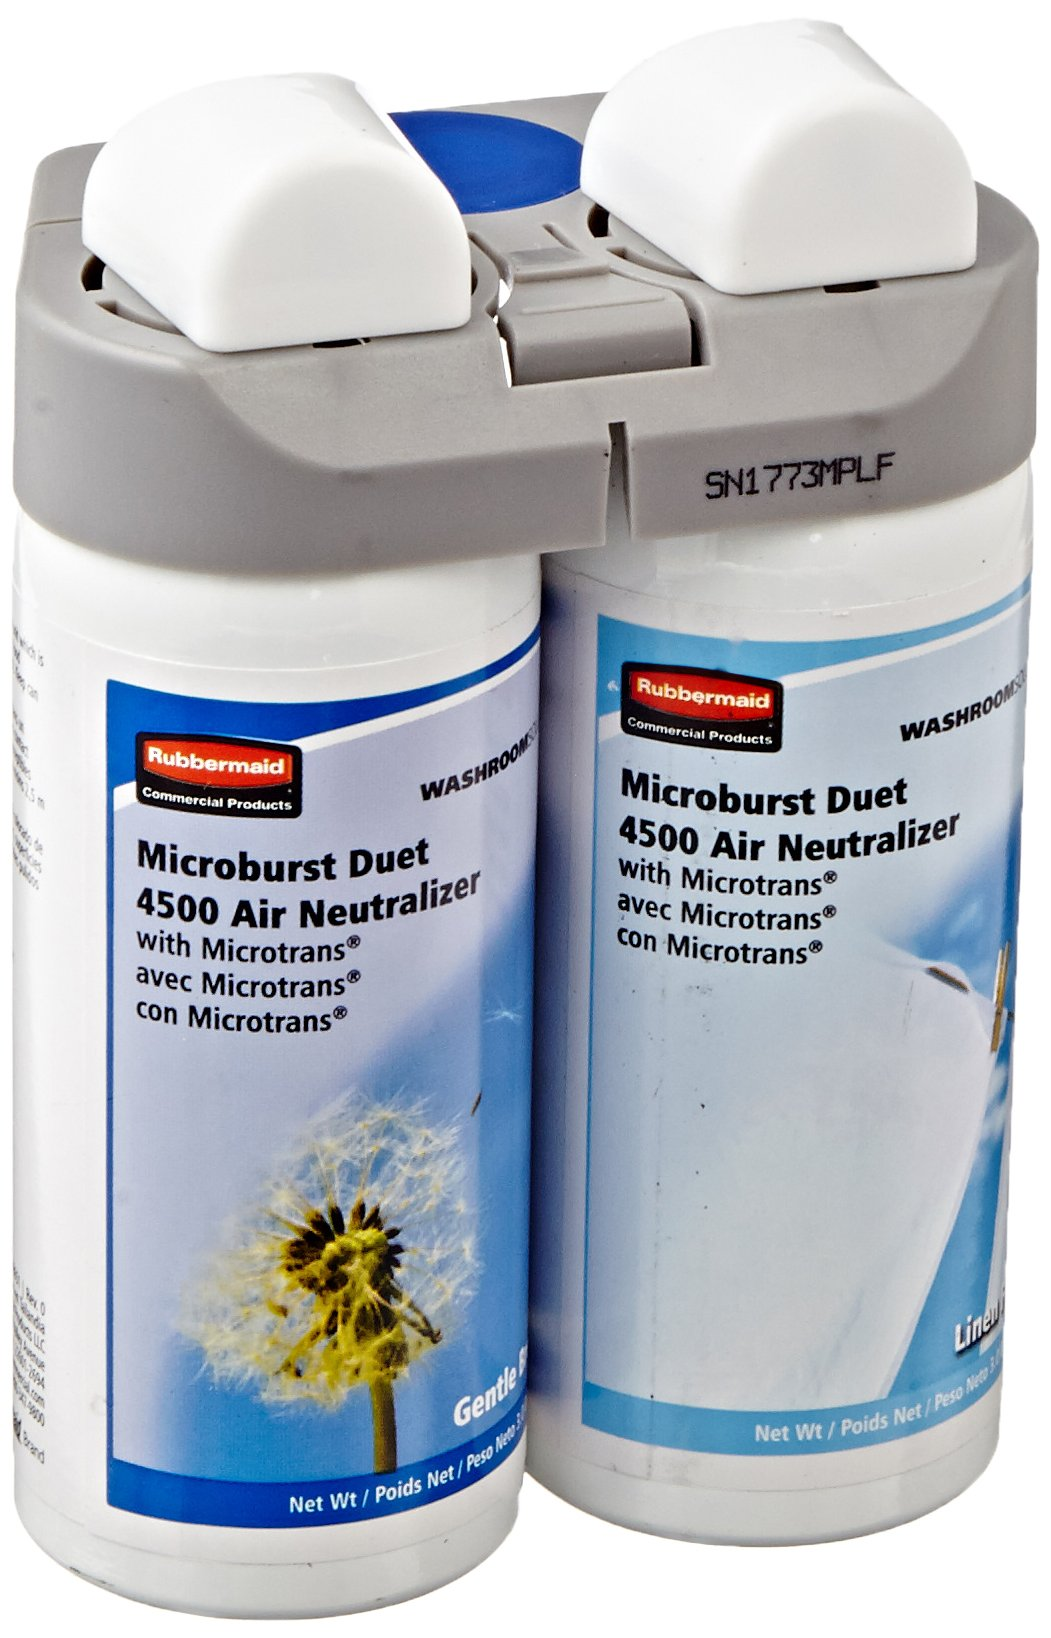 Rubbermaid Commercial 3485949 Microburst Duet Refills, Gentle Breeze/Linen Fresh, 3oz (Case of 4) by Rubbermaid Commercial Products (Image #2)